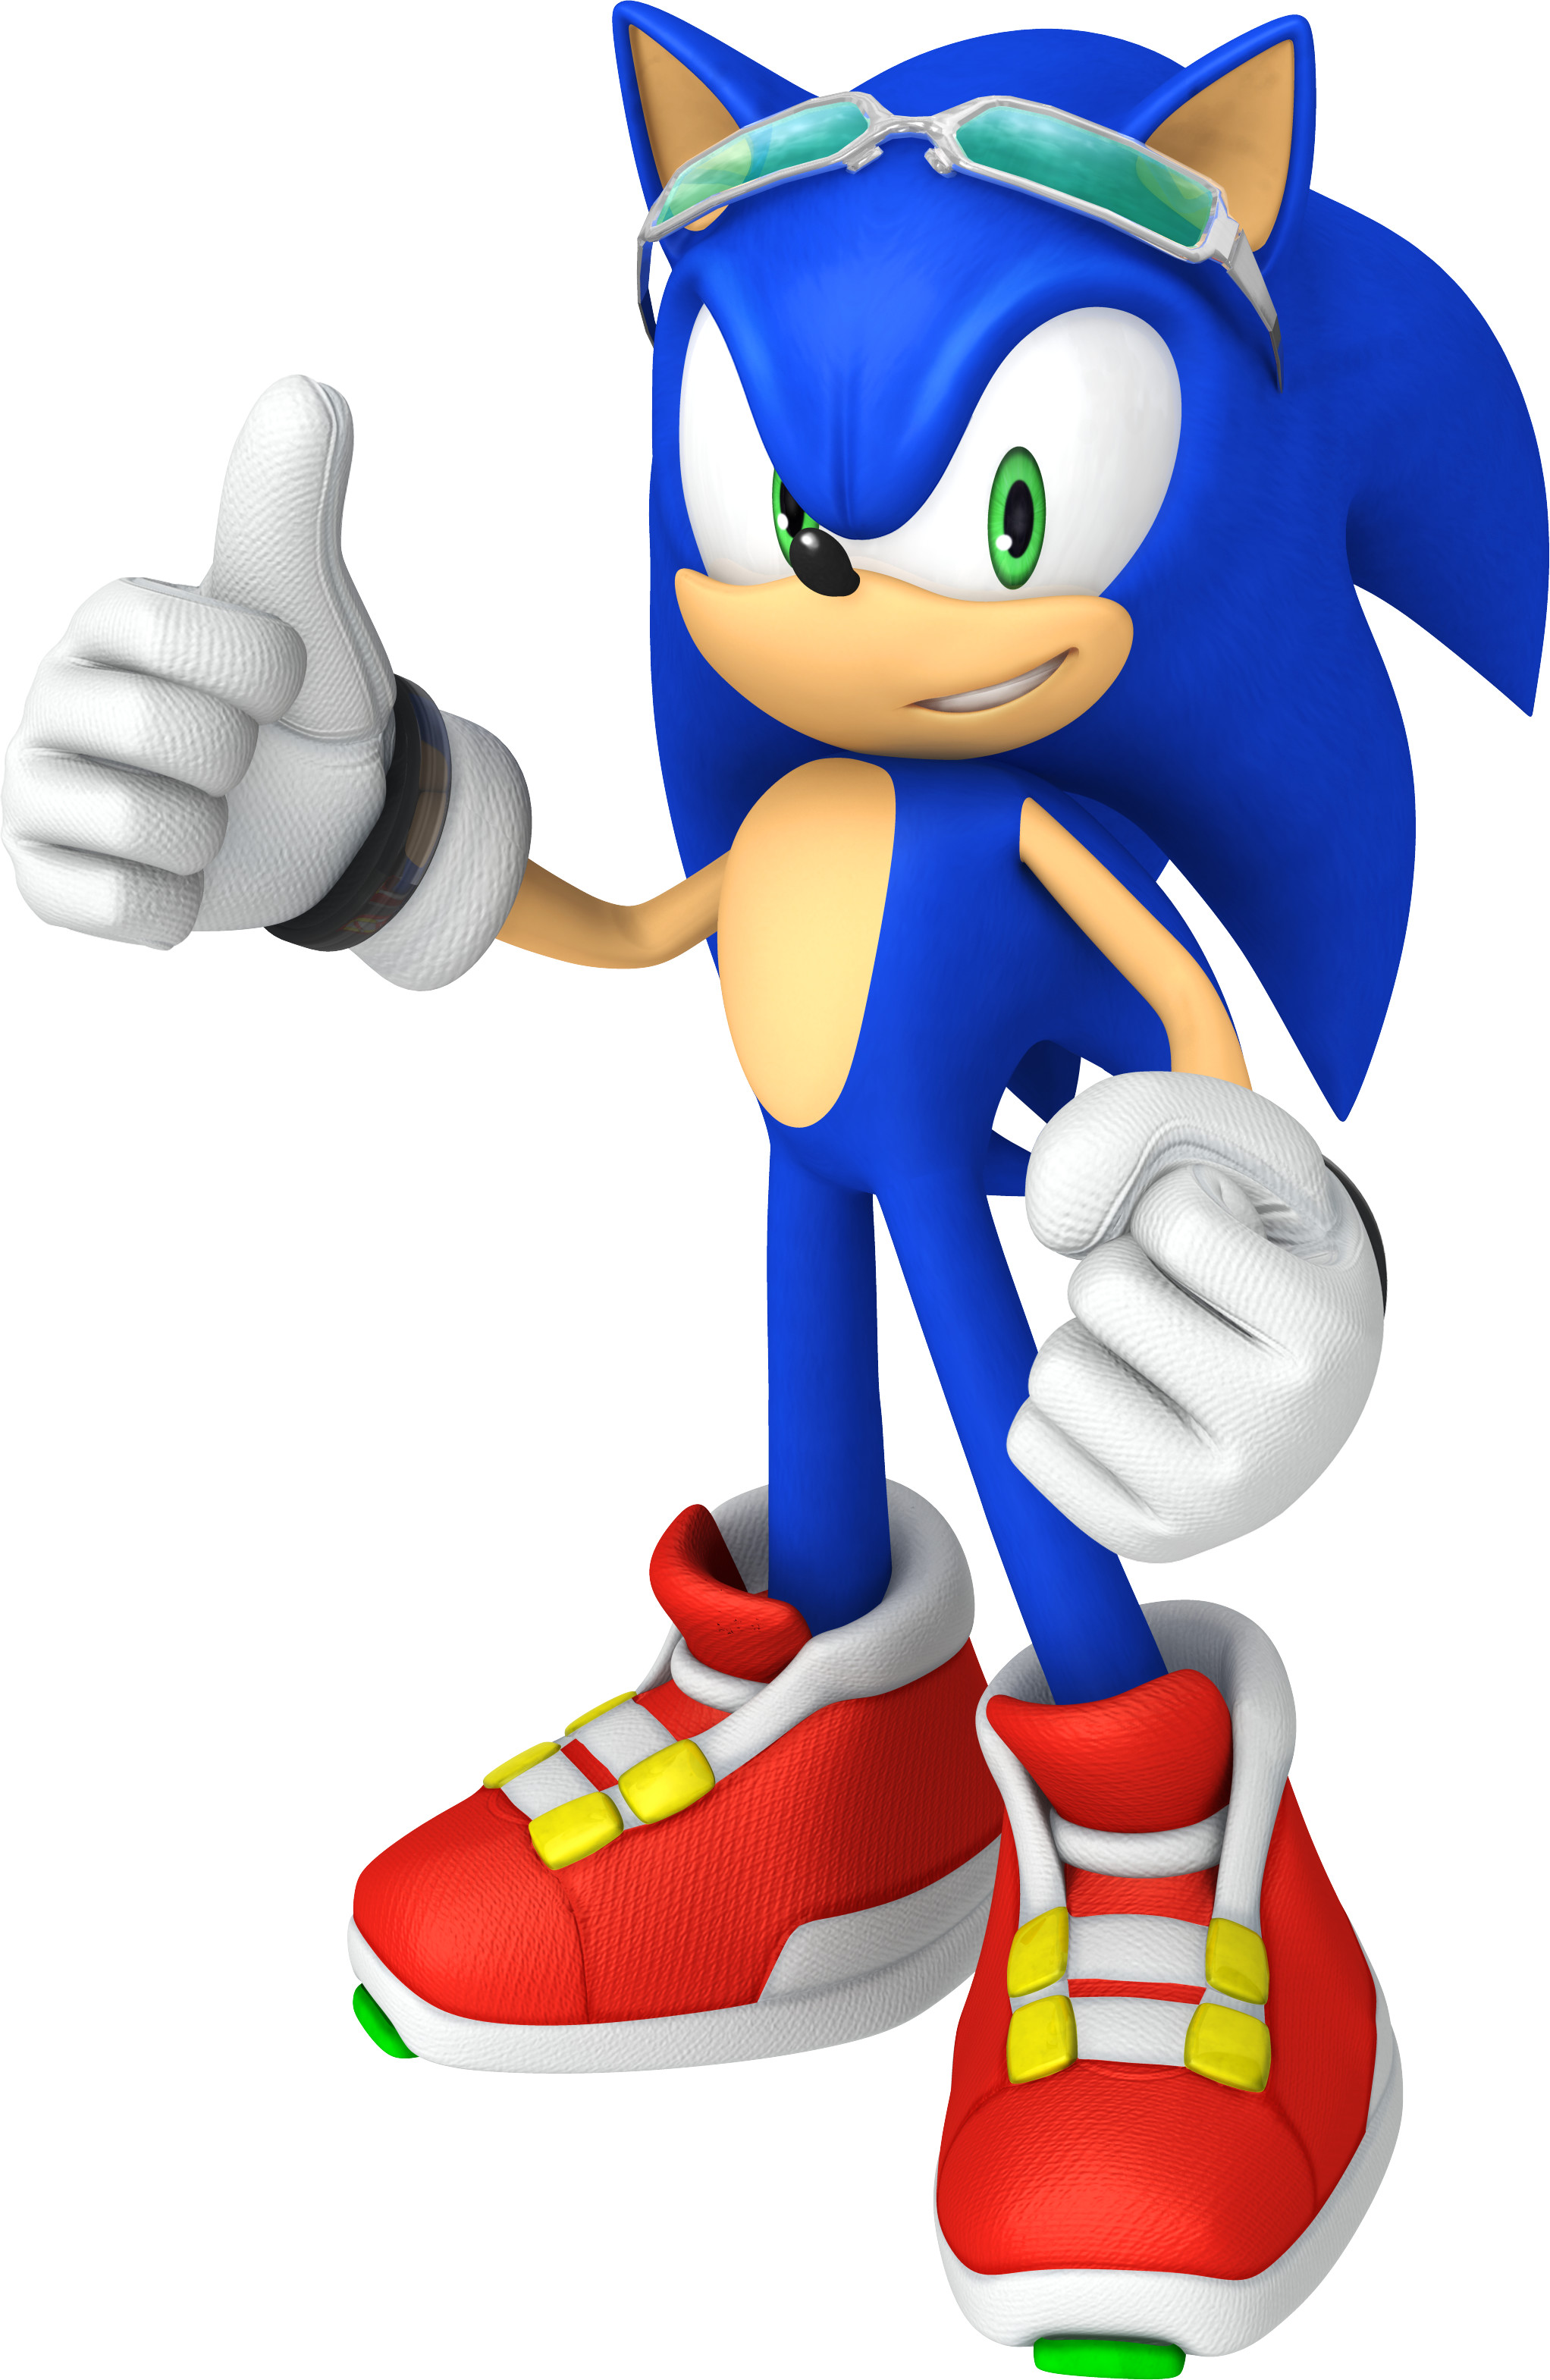 3D Sonic the Hedgehog 'Free Rider' thumbs …